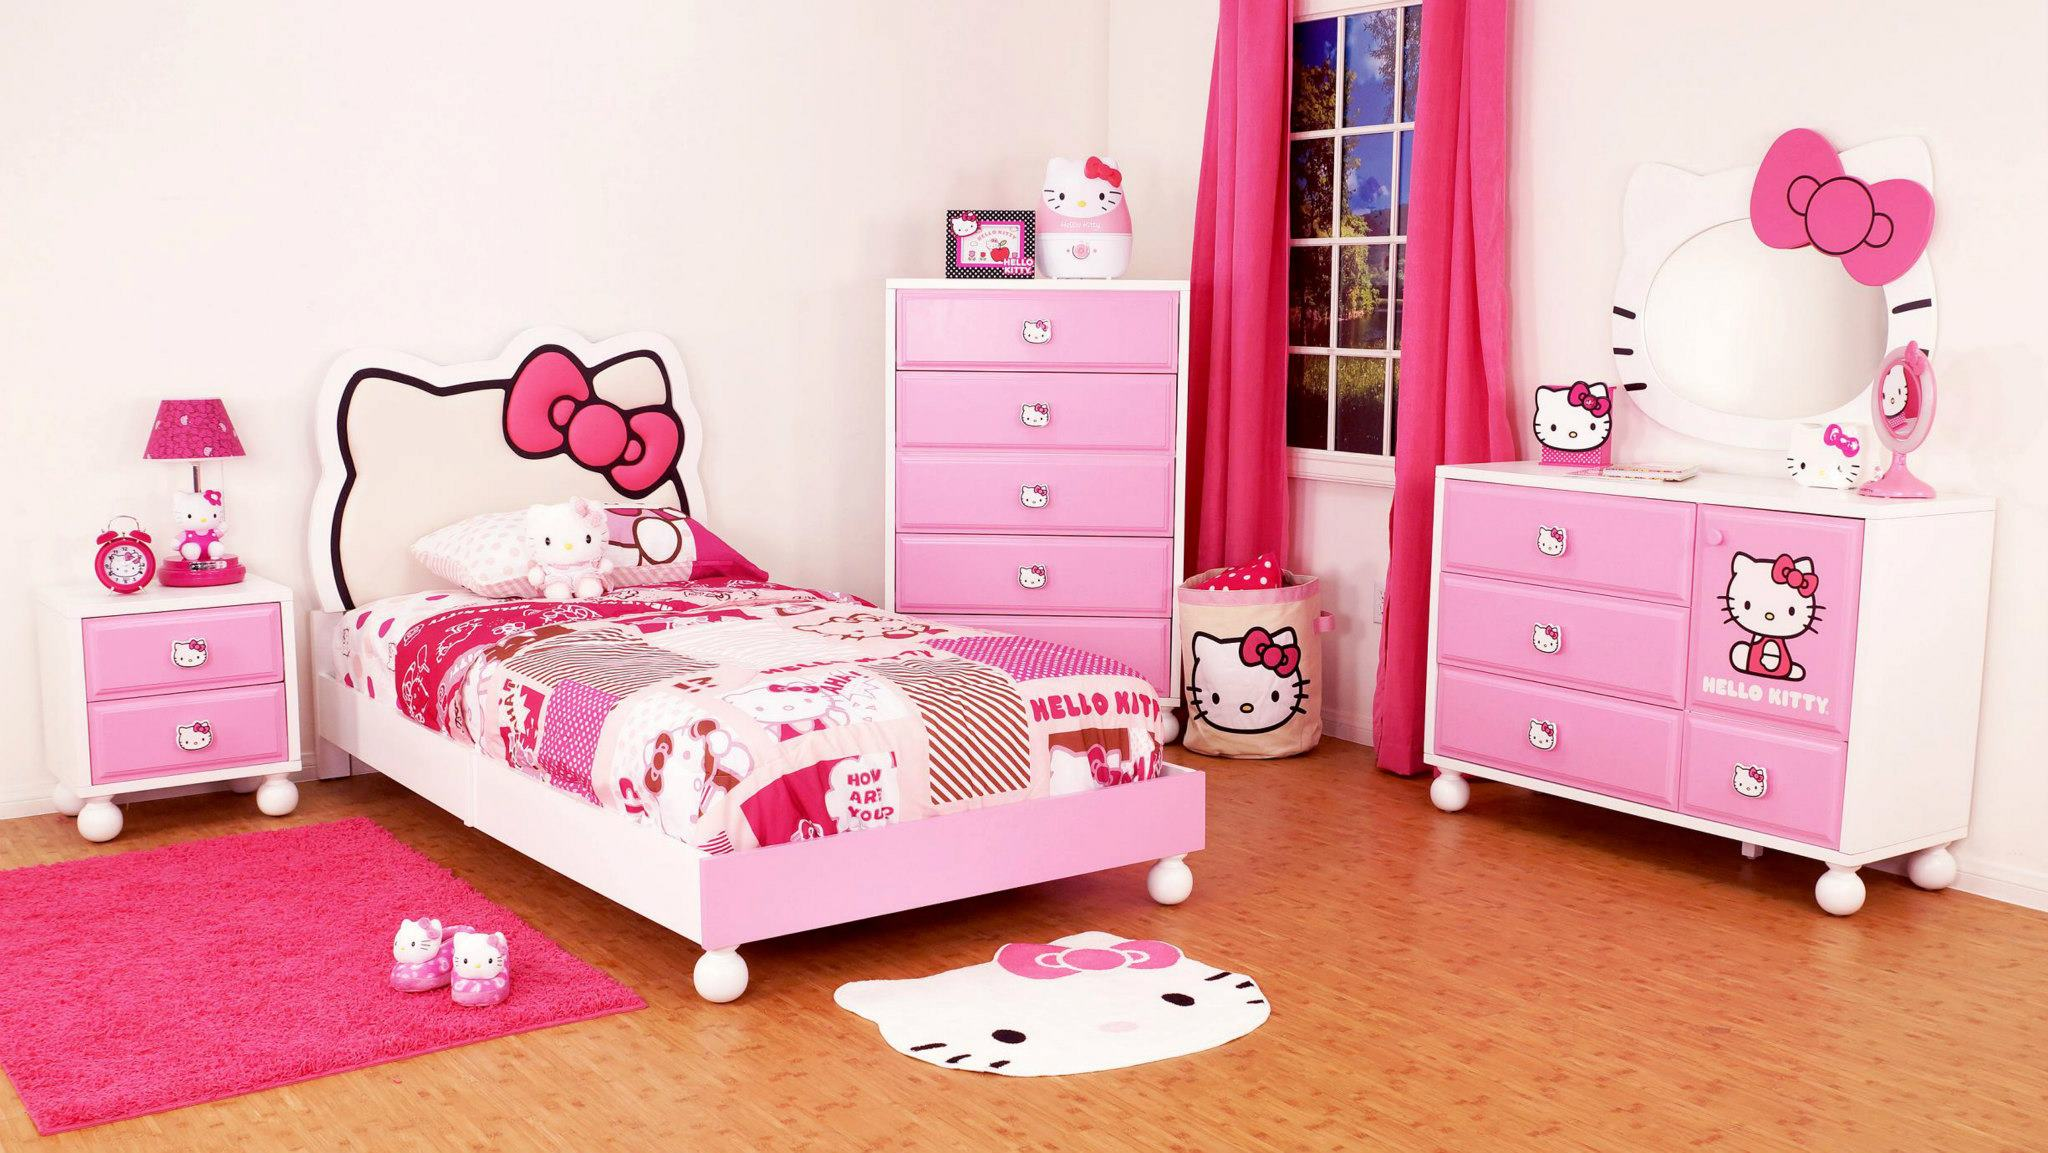 Pink hello kitty bedsheet - 25 Most Adorable Hello Kitty Bedroom Decoration Ideas